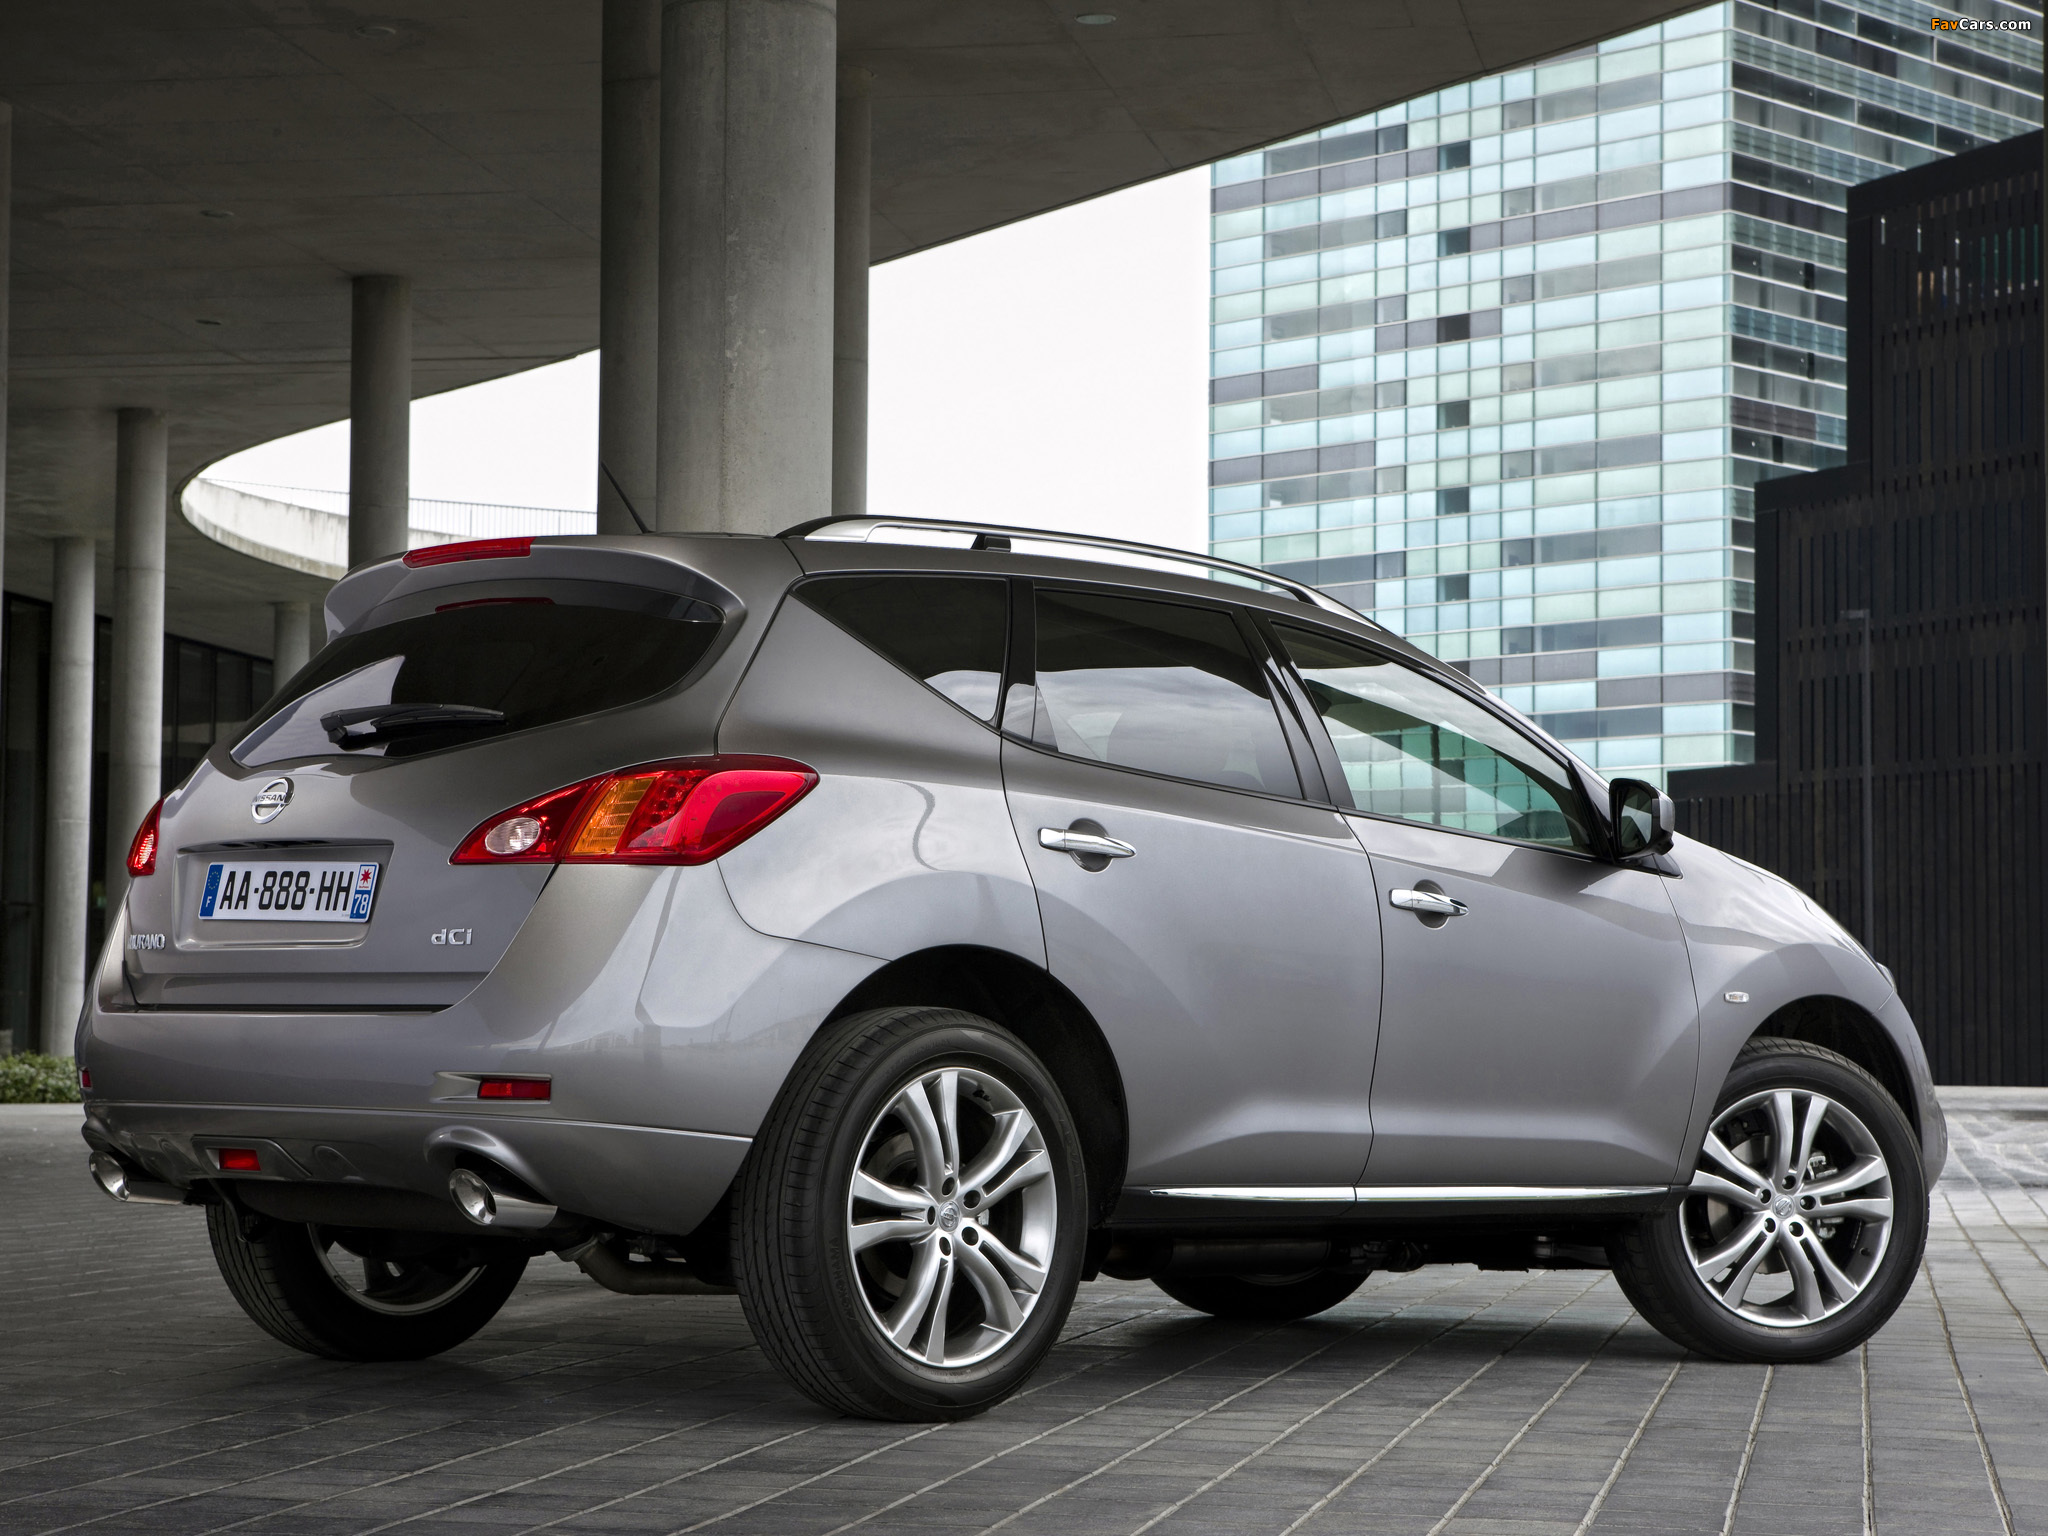 Nissan Murano (Z51) 2010 images (2048 x 1536)